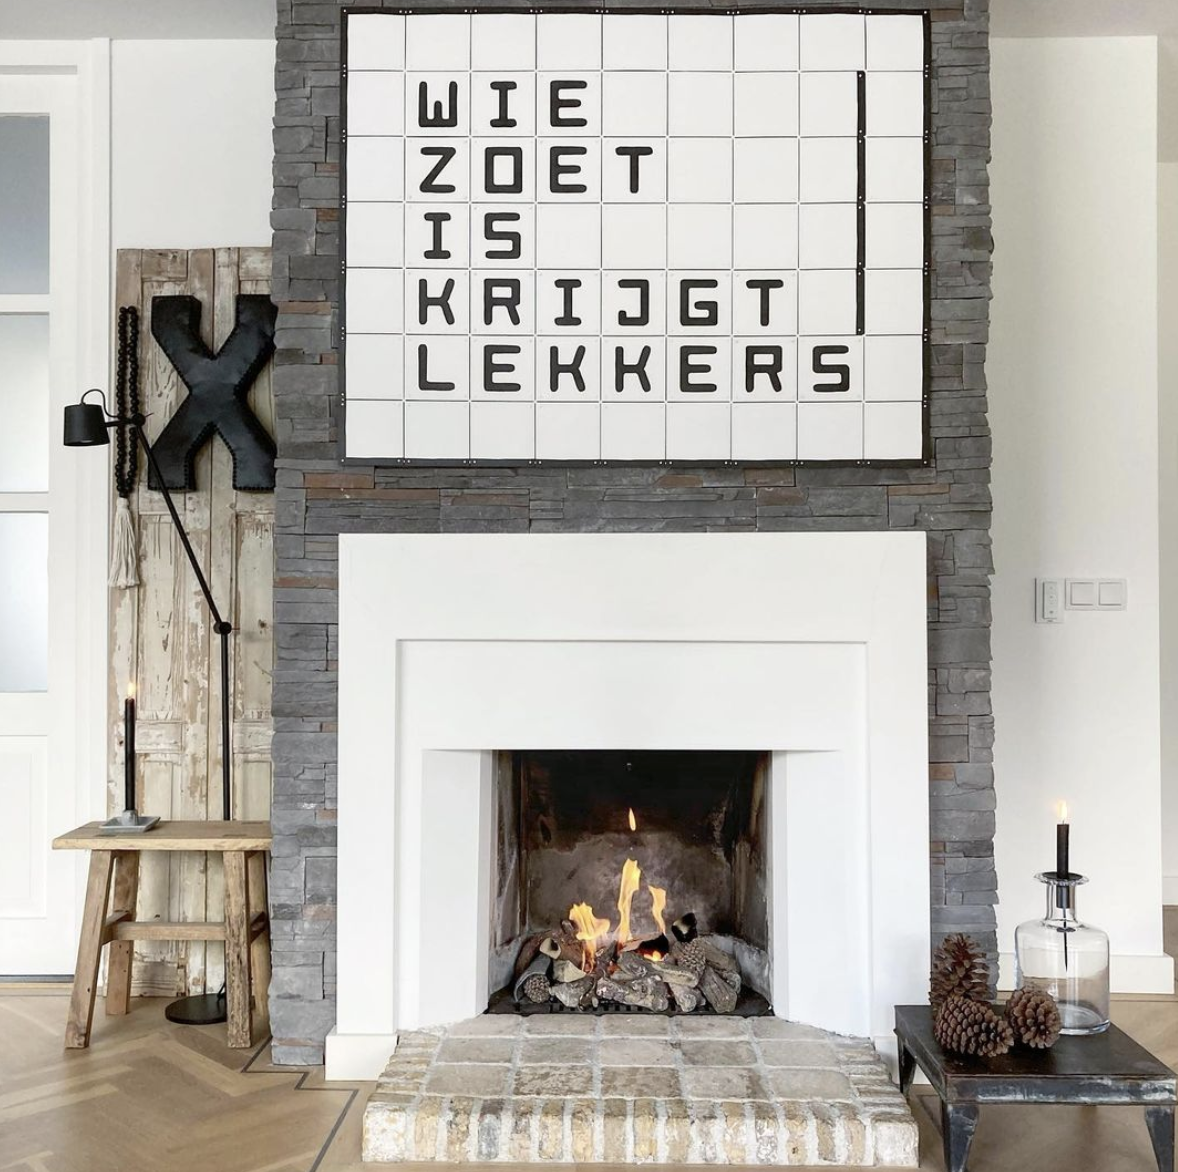 291 Instagram interieur inspiratie top 5